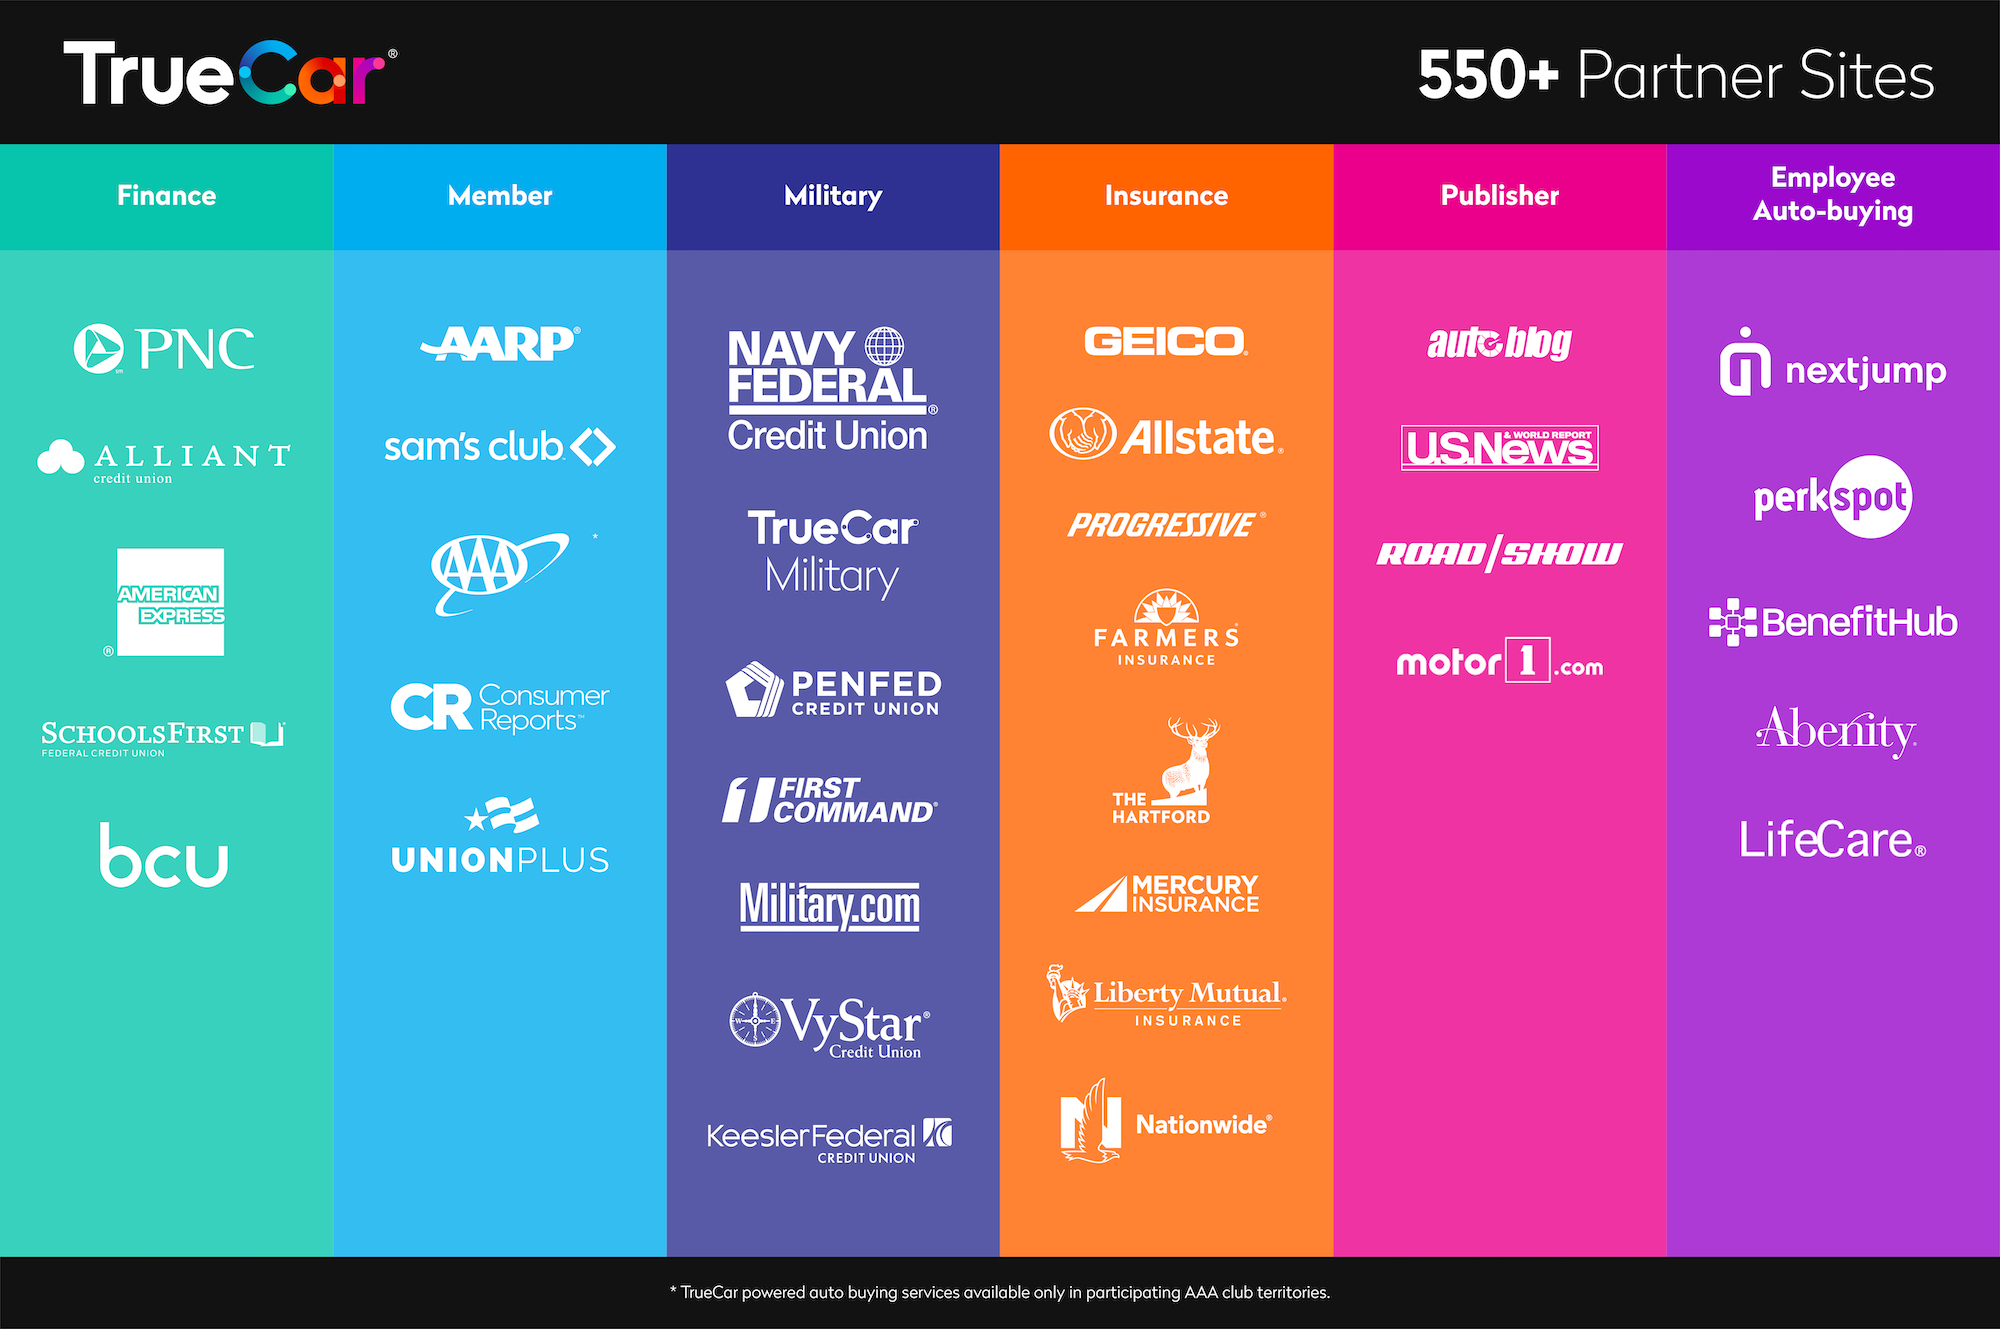 An Image showing all TrueCar's Partners in their network